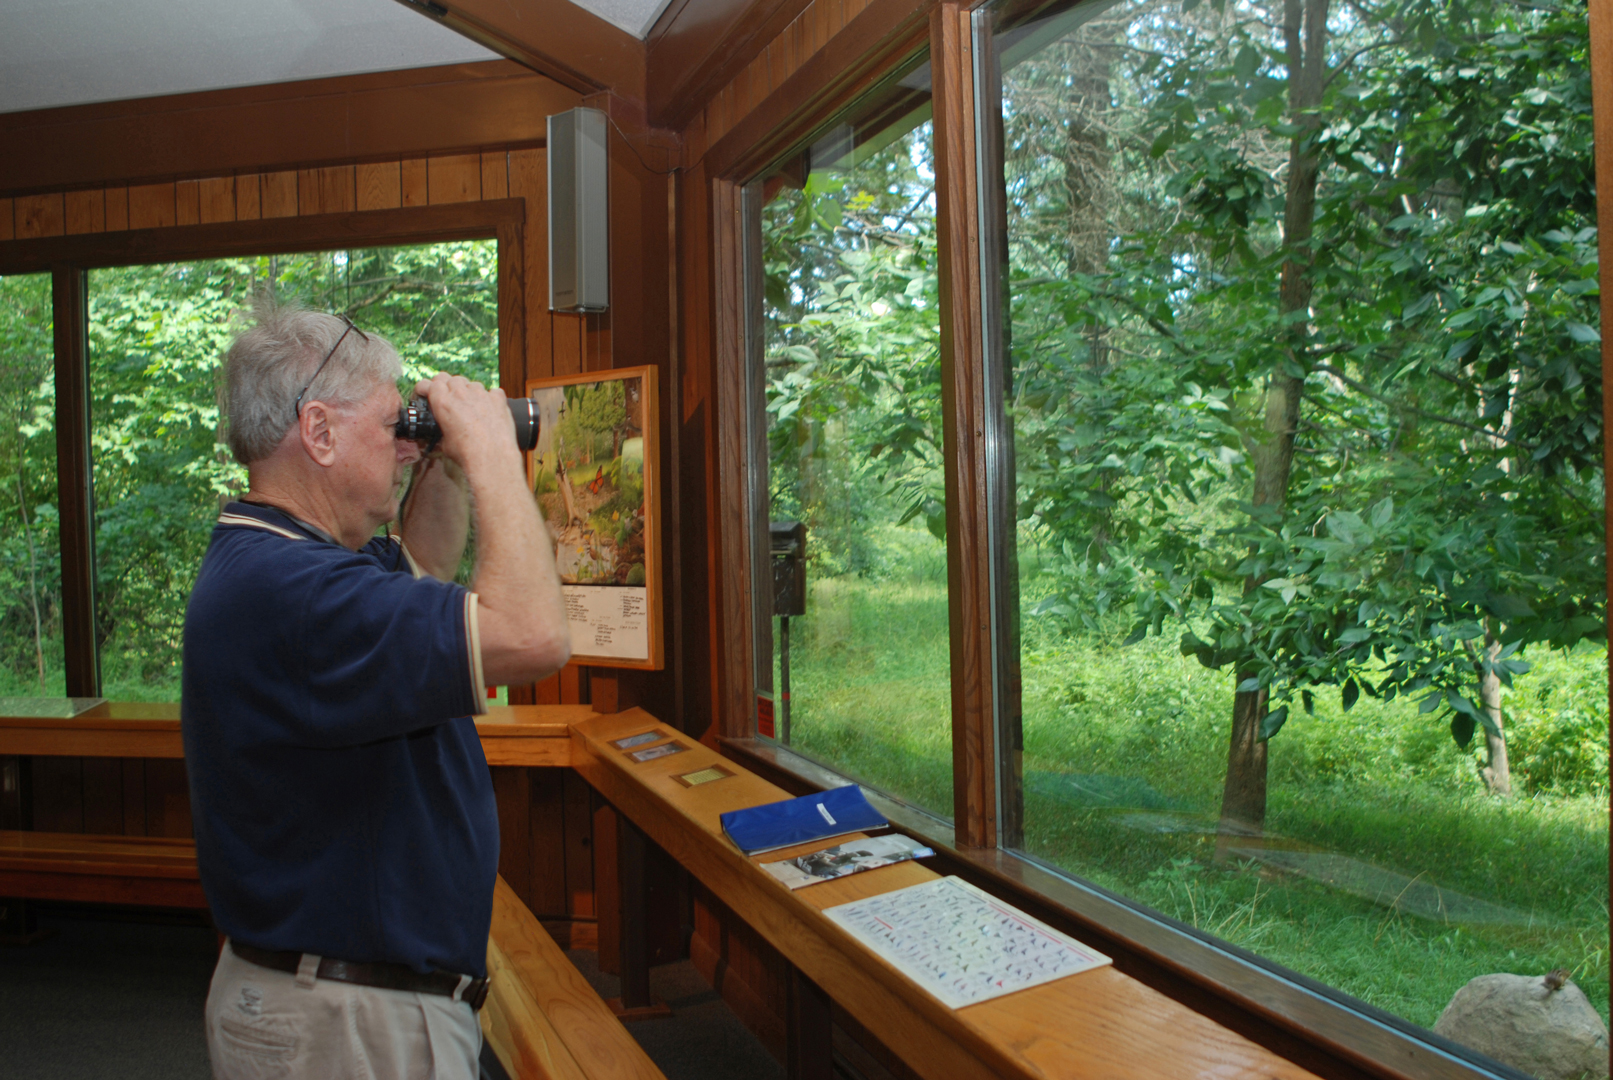 Great views of birds and other wildlife present themselves through the nature center windows at Blacklick Woods. Photo by Bill McCracken.